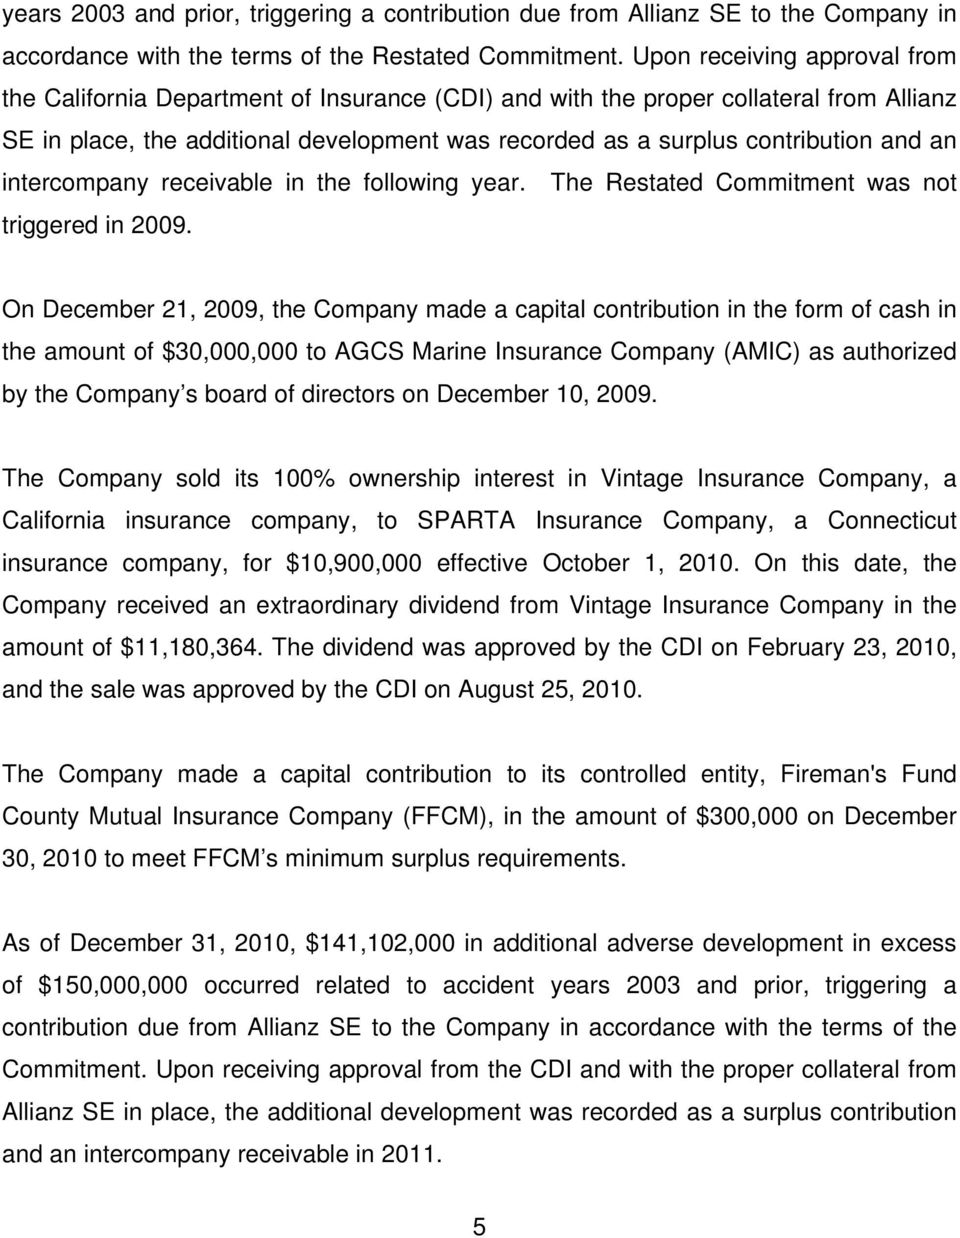 and an intercompany receivable in the following year. The Restated Commitment was not triggered in 2009.